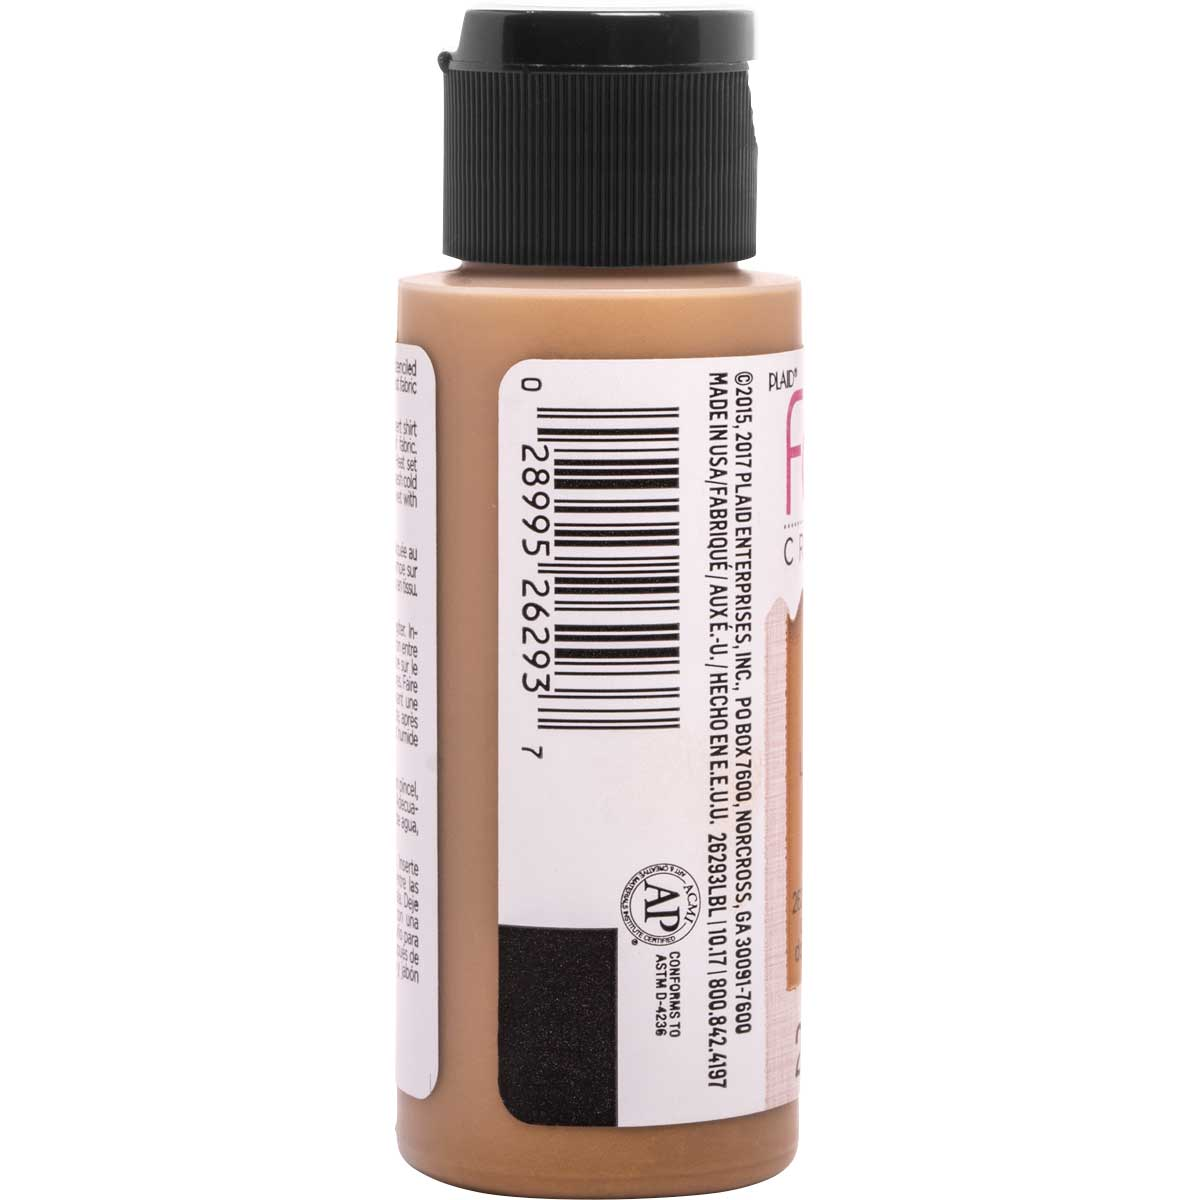 Fabric Creations™ Soft Fabric Inks - Metallic Antique Gold, 2 oz. - 26293